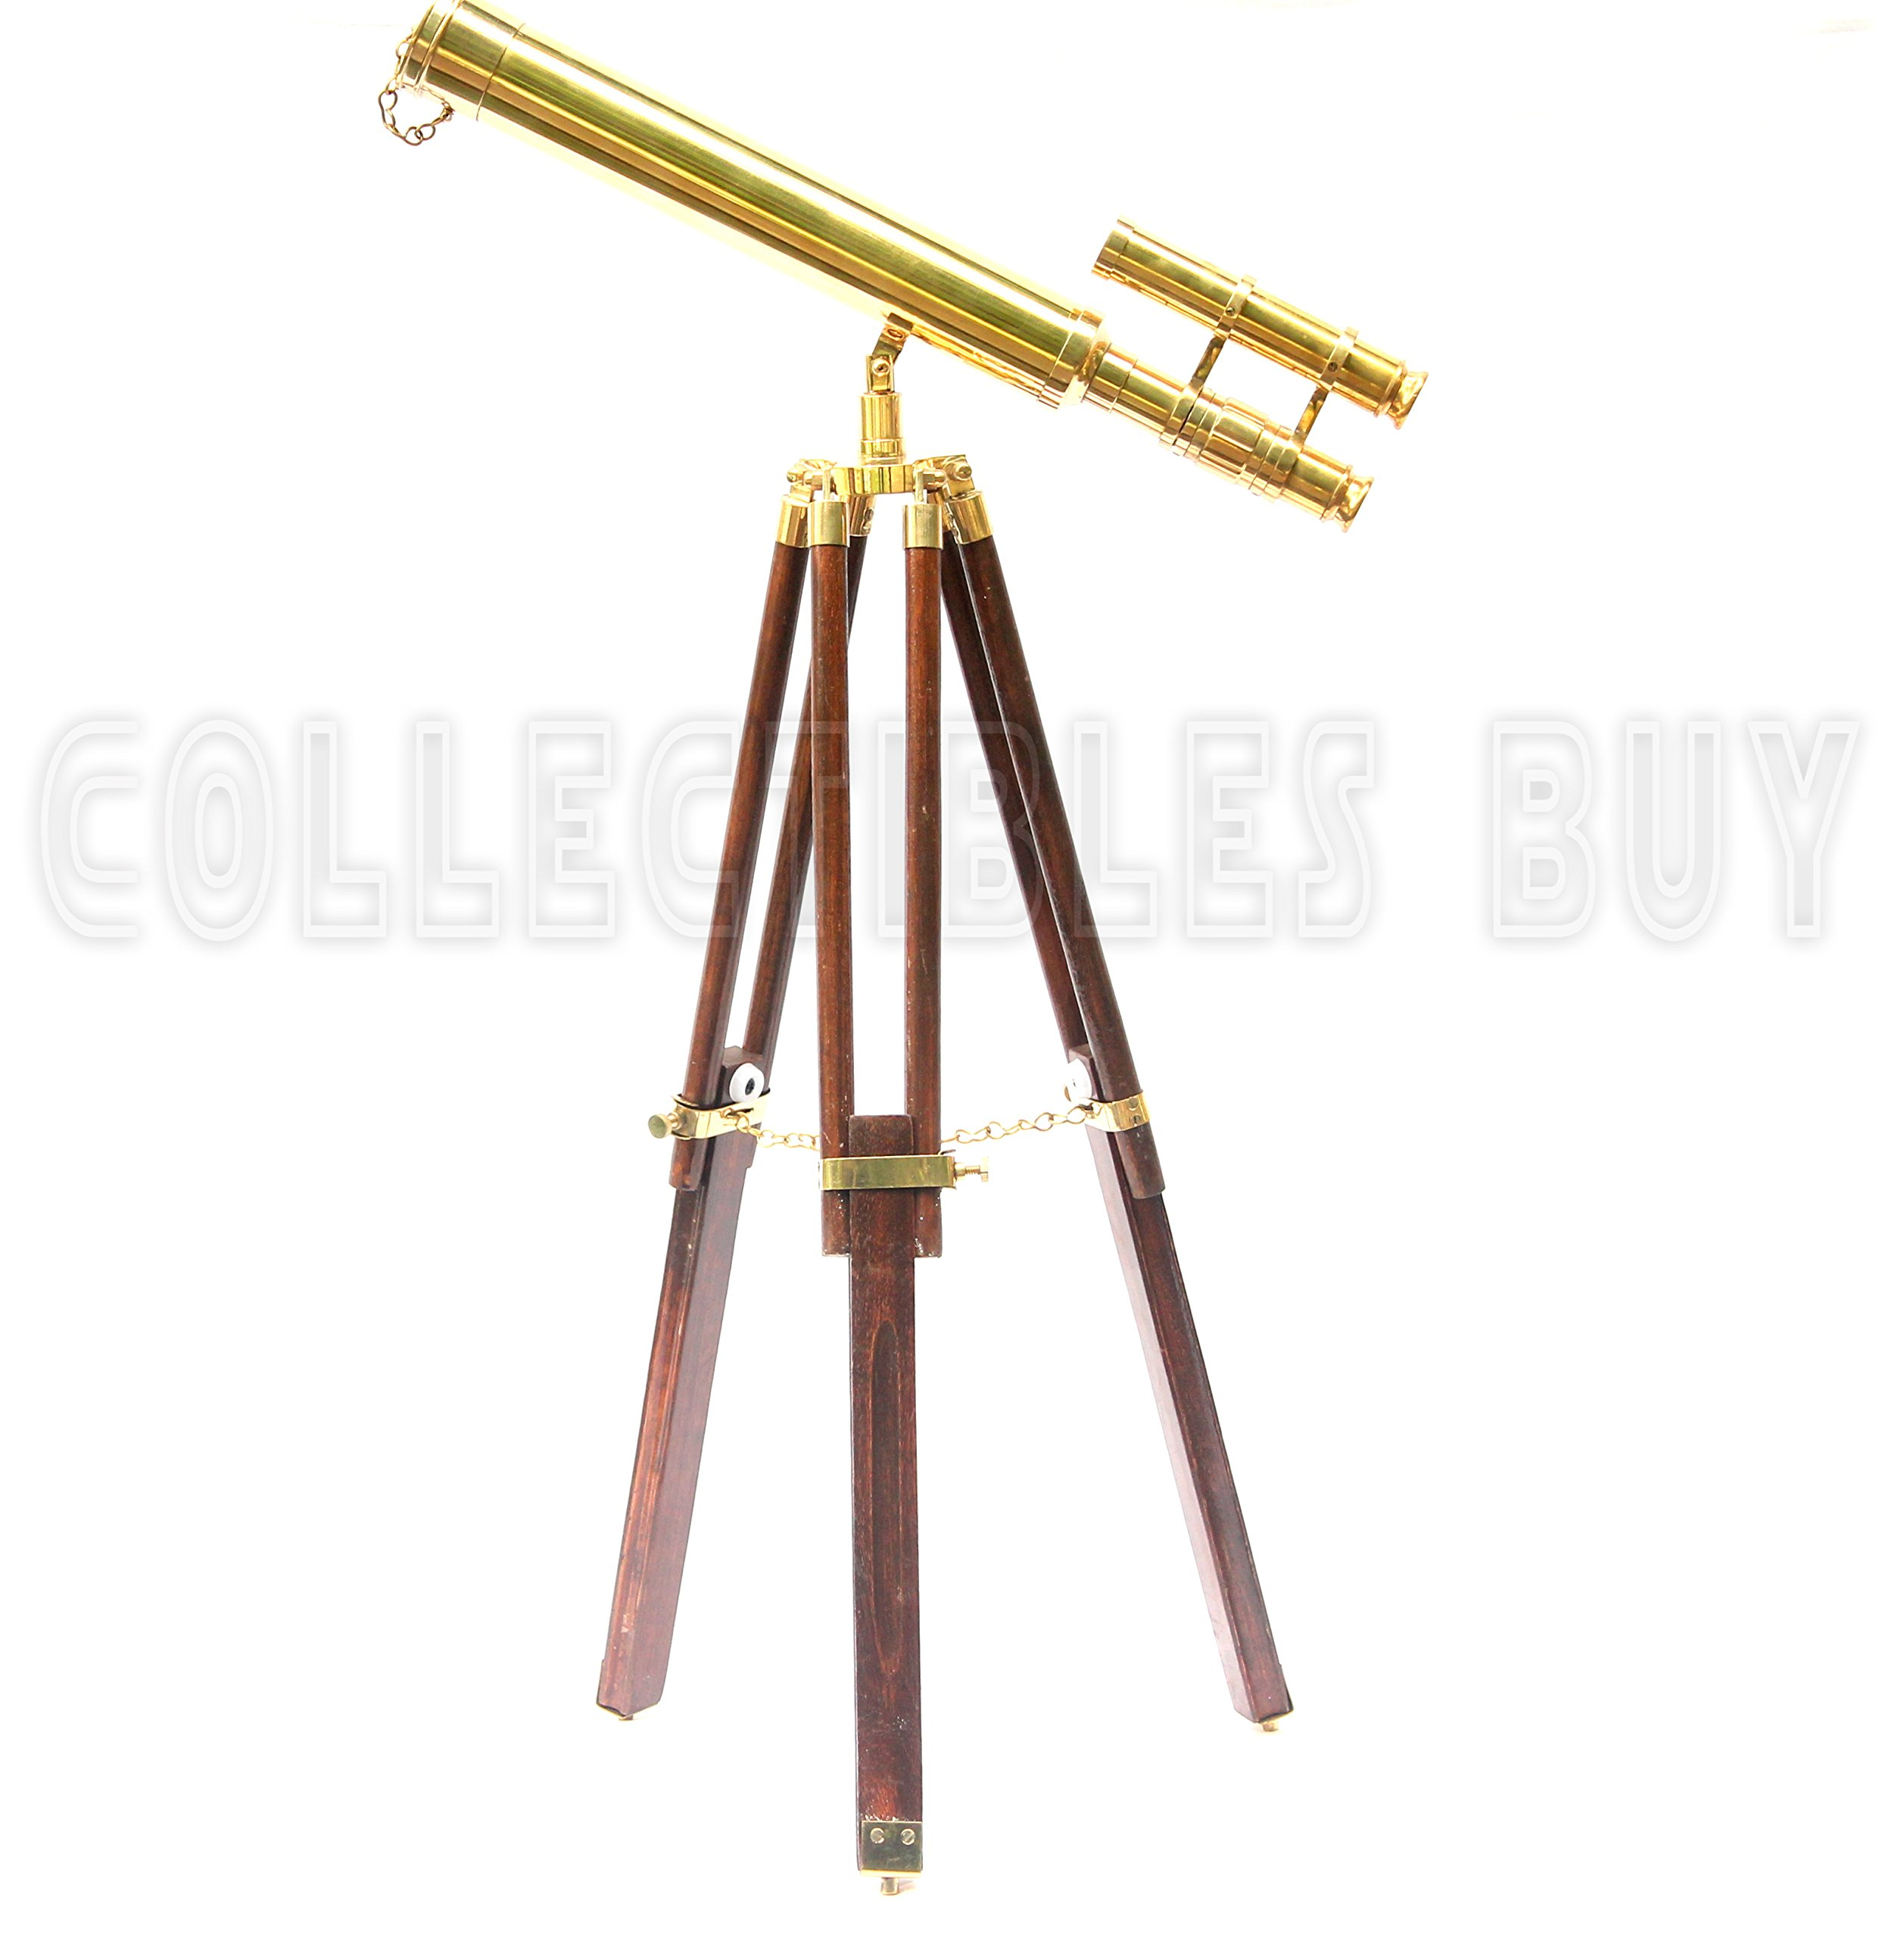 collectiblesBuy Vintage Solid Brass Nautical Port Marine Navy Telescope Single Barrel Brass Finish & Brown (Double Barrel Telescope (Height:26'' inches))